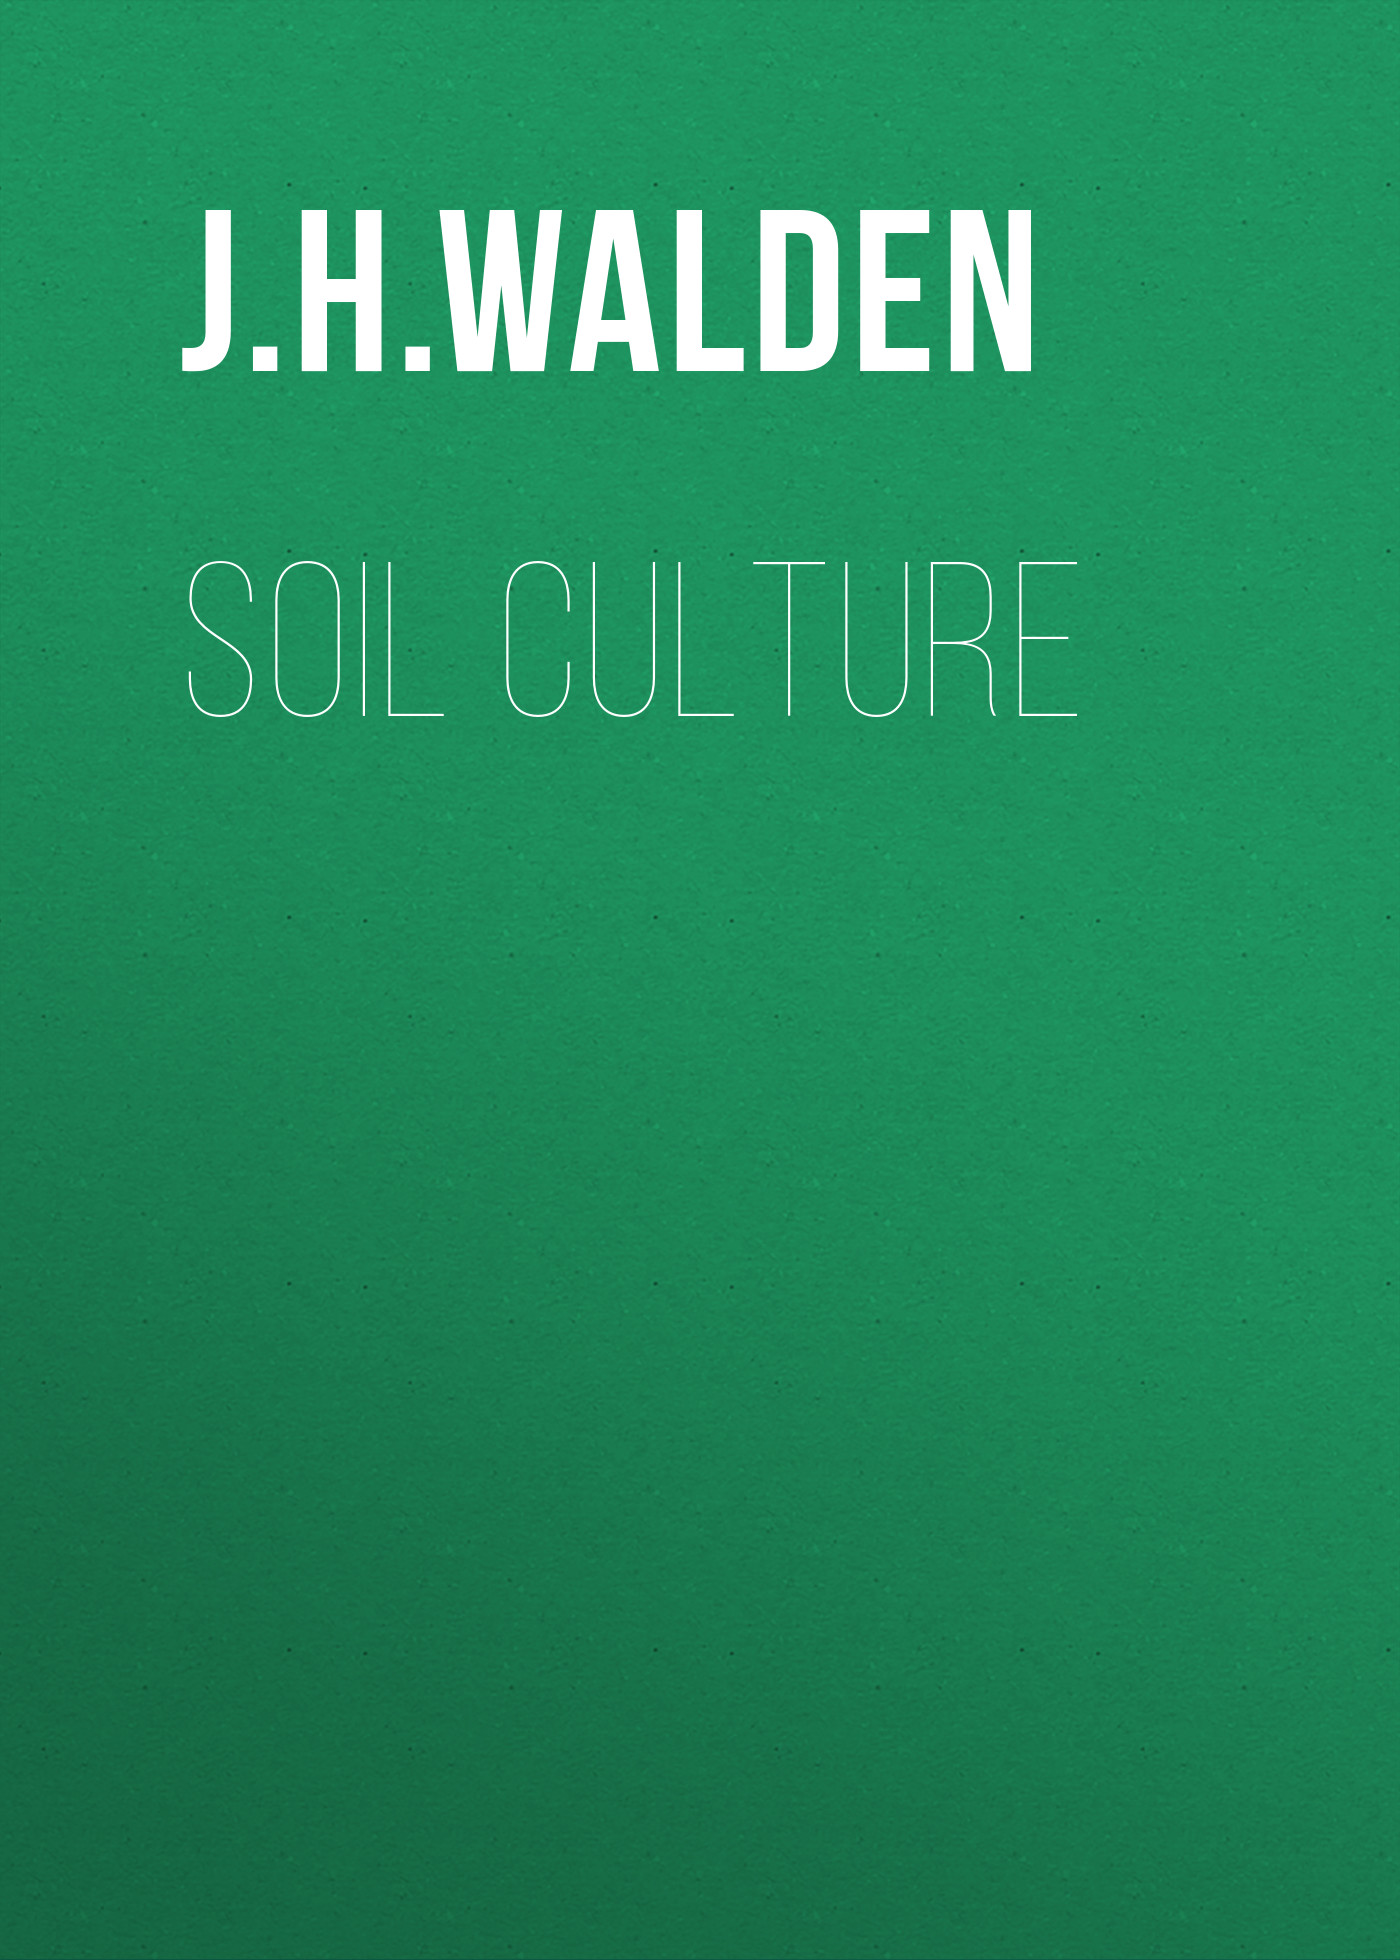 J. H. Walden Soil Culture henry david thoreau walden